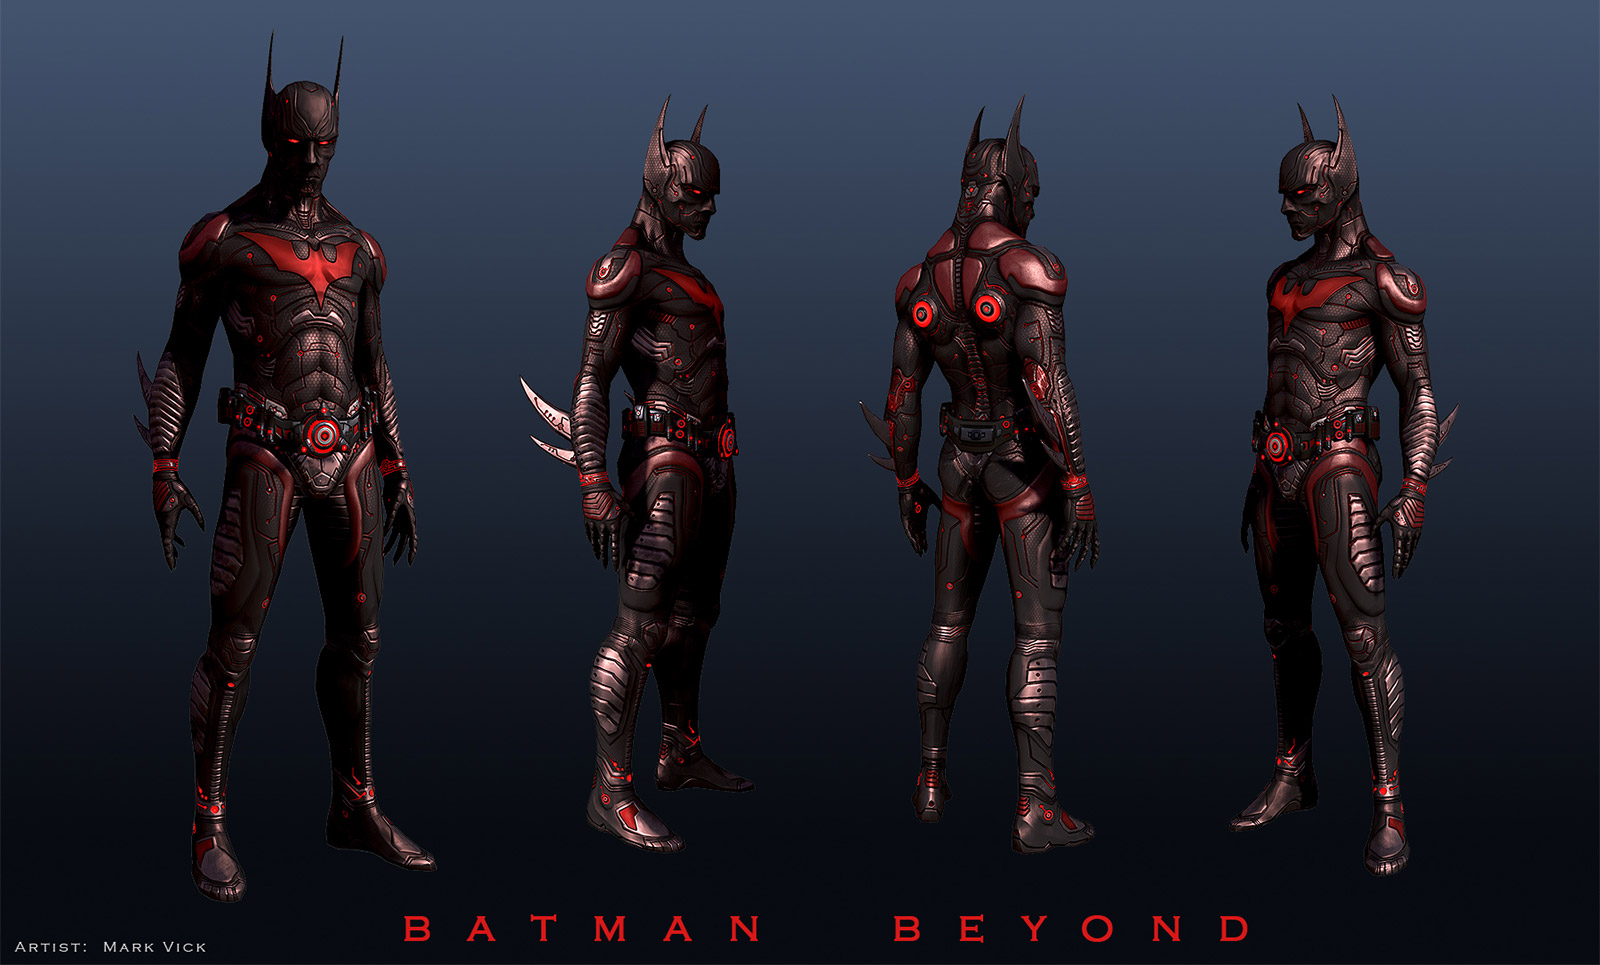 batmanbeyond21320123.jpg